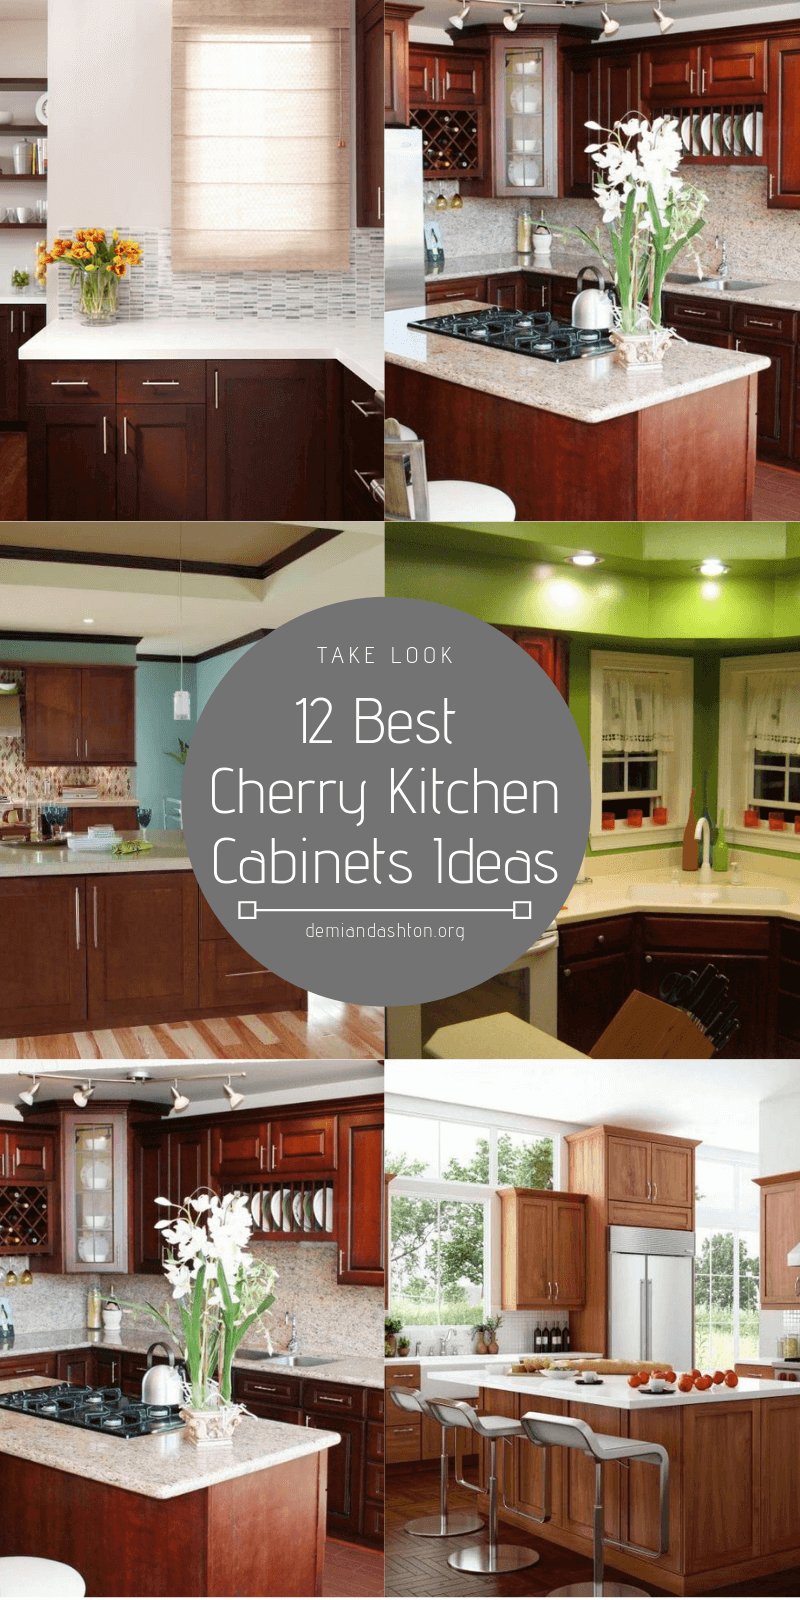 Cherry Kitchen Cabinets Ideas